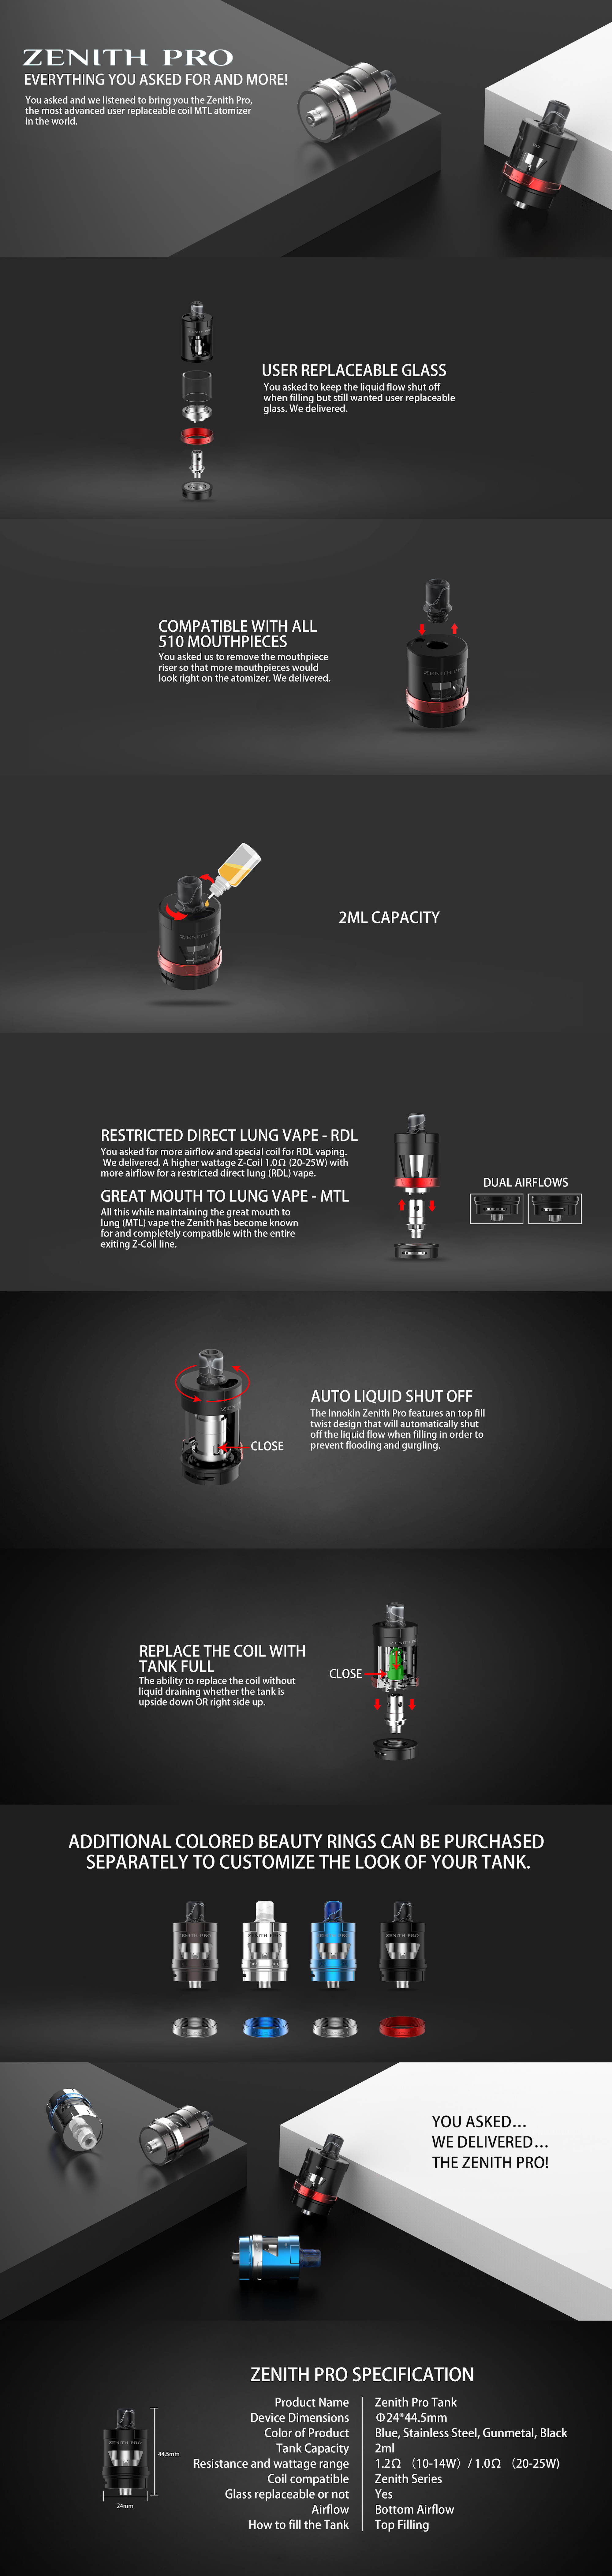 Zenith Pro product page 2ml